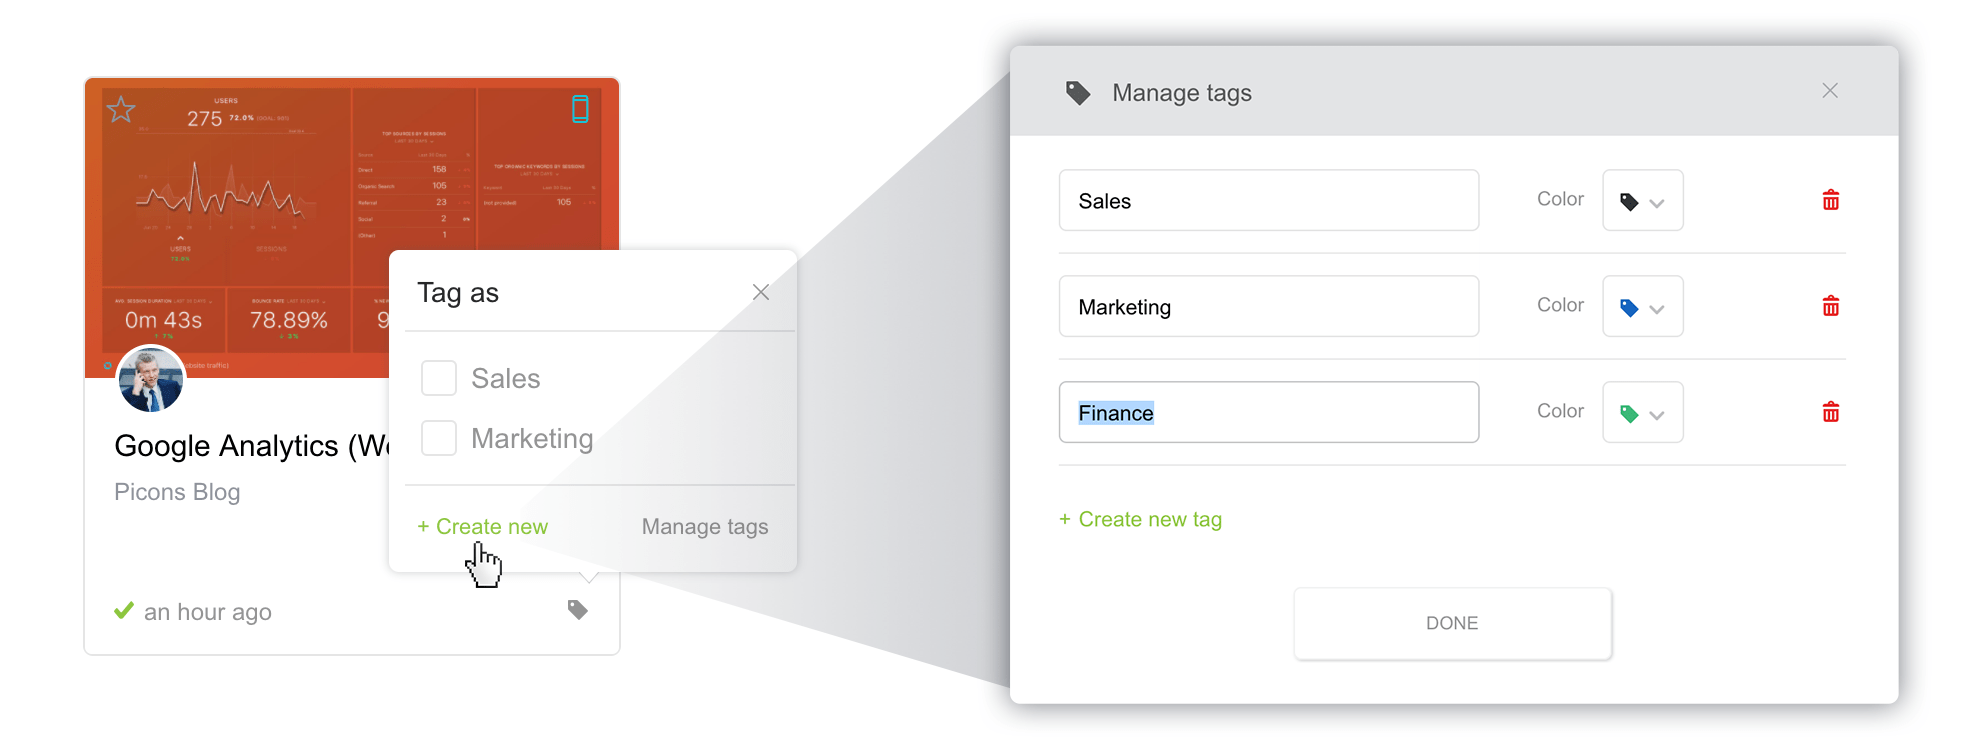 How To Organize Your Databoards With Tags And Favorites